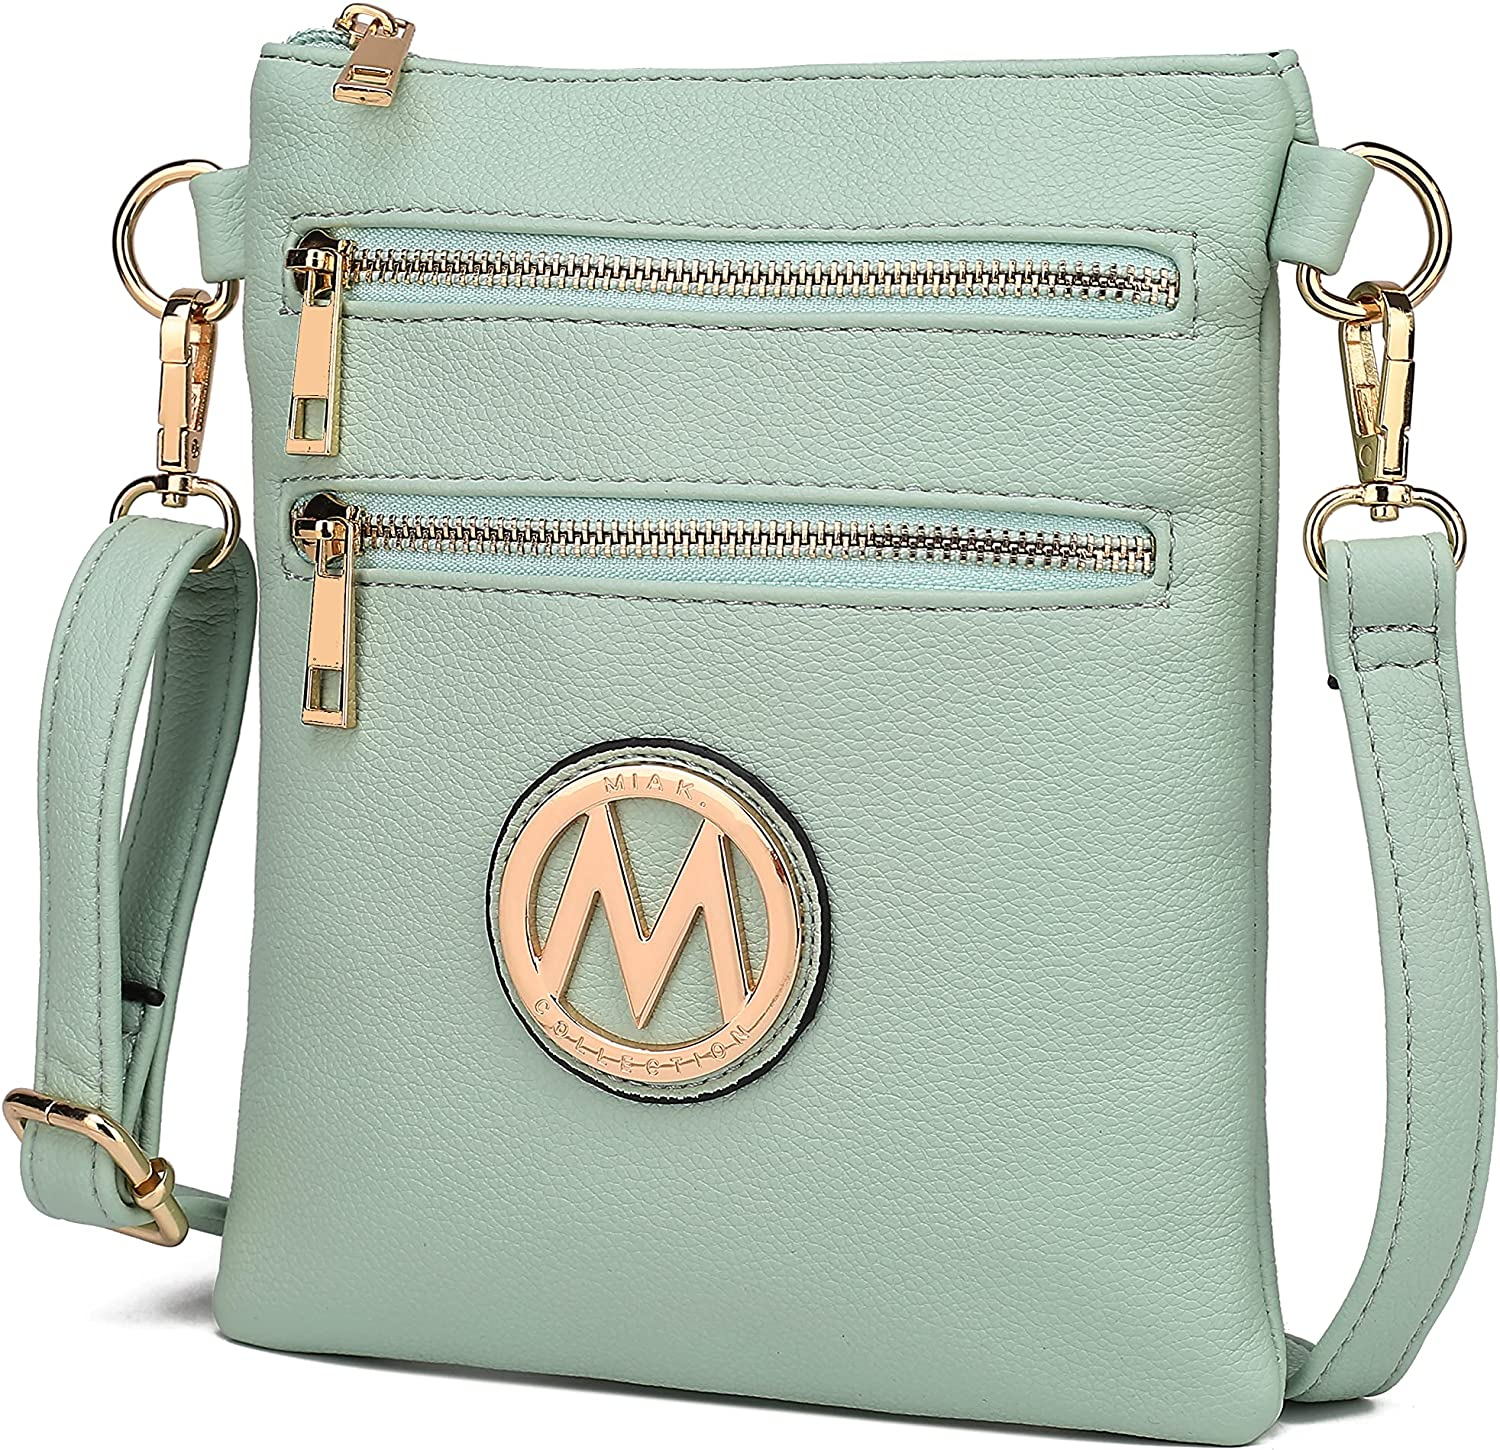 MKF Crossbody Bag for Women Our shop OFFers the best service – Desi Max 45% OFF Leather PU Strap Adjustable